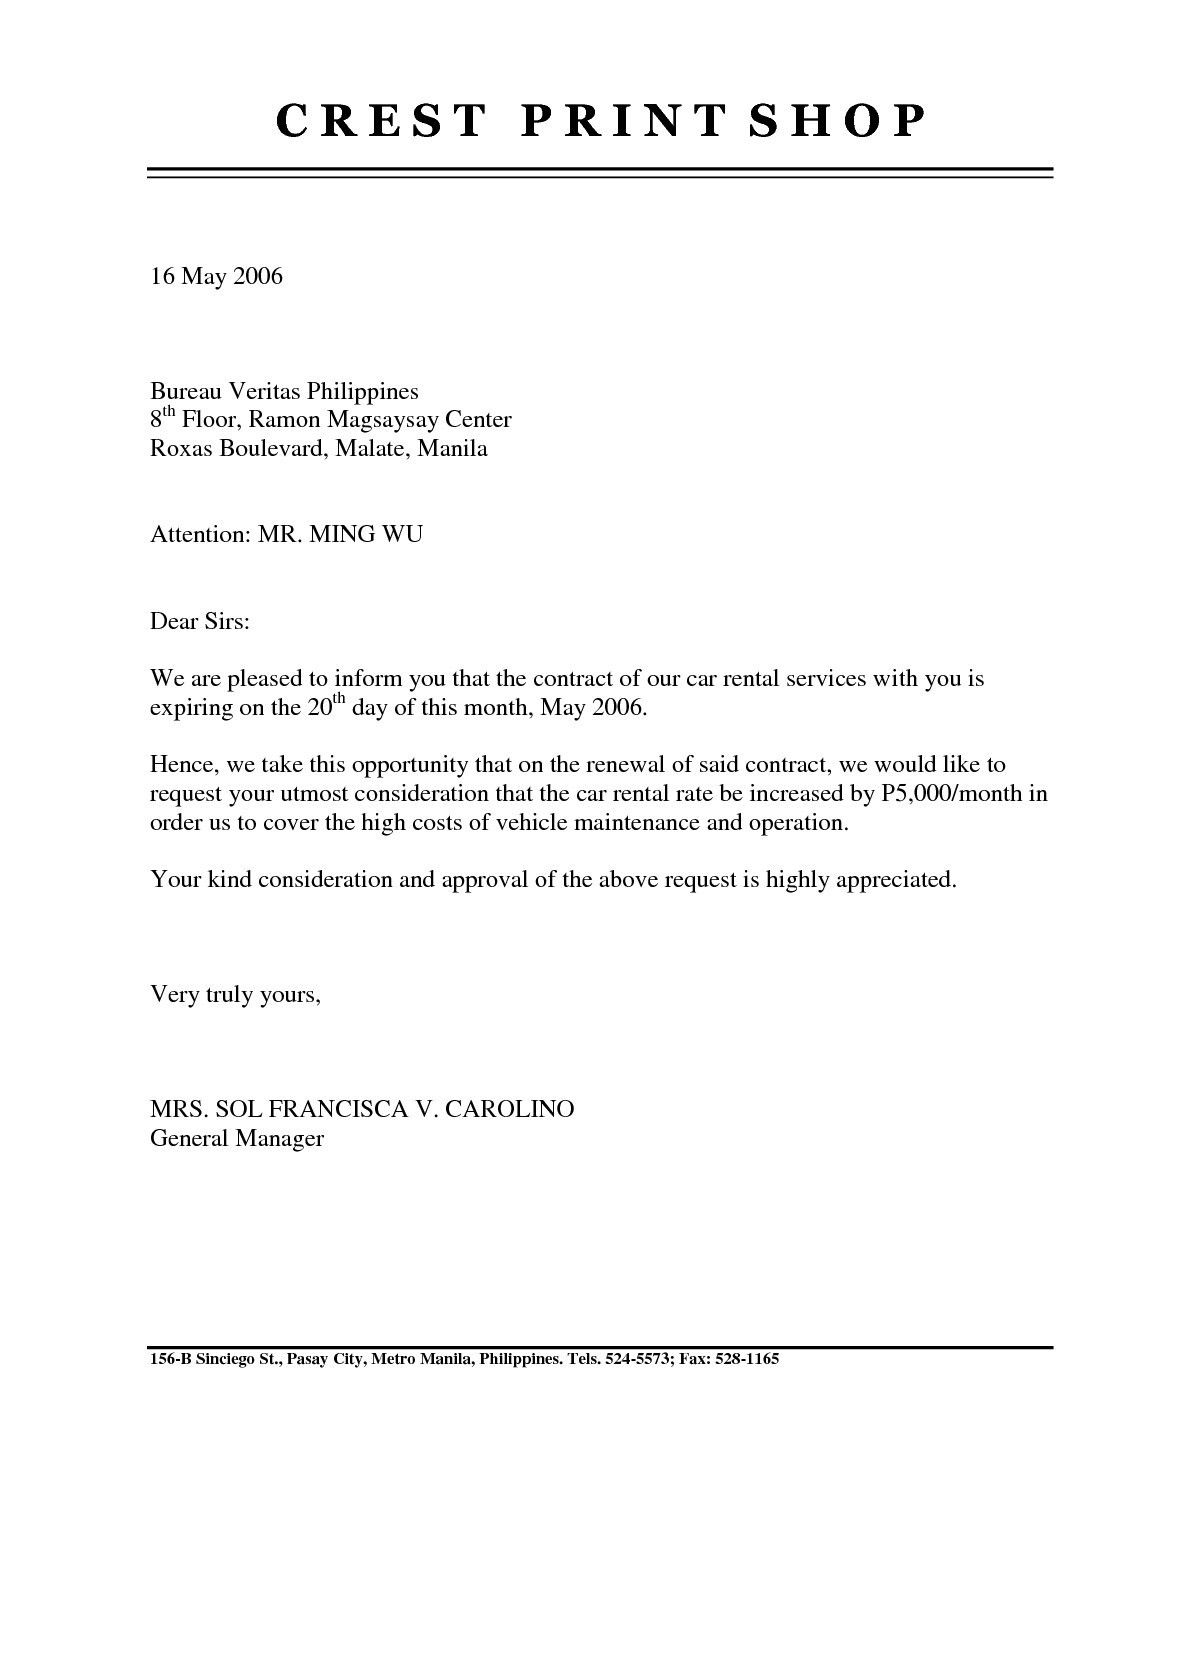 Rent Renewal Letter Template - Tenancy Agreement Renewal Template